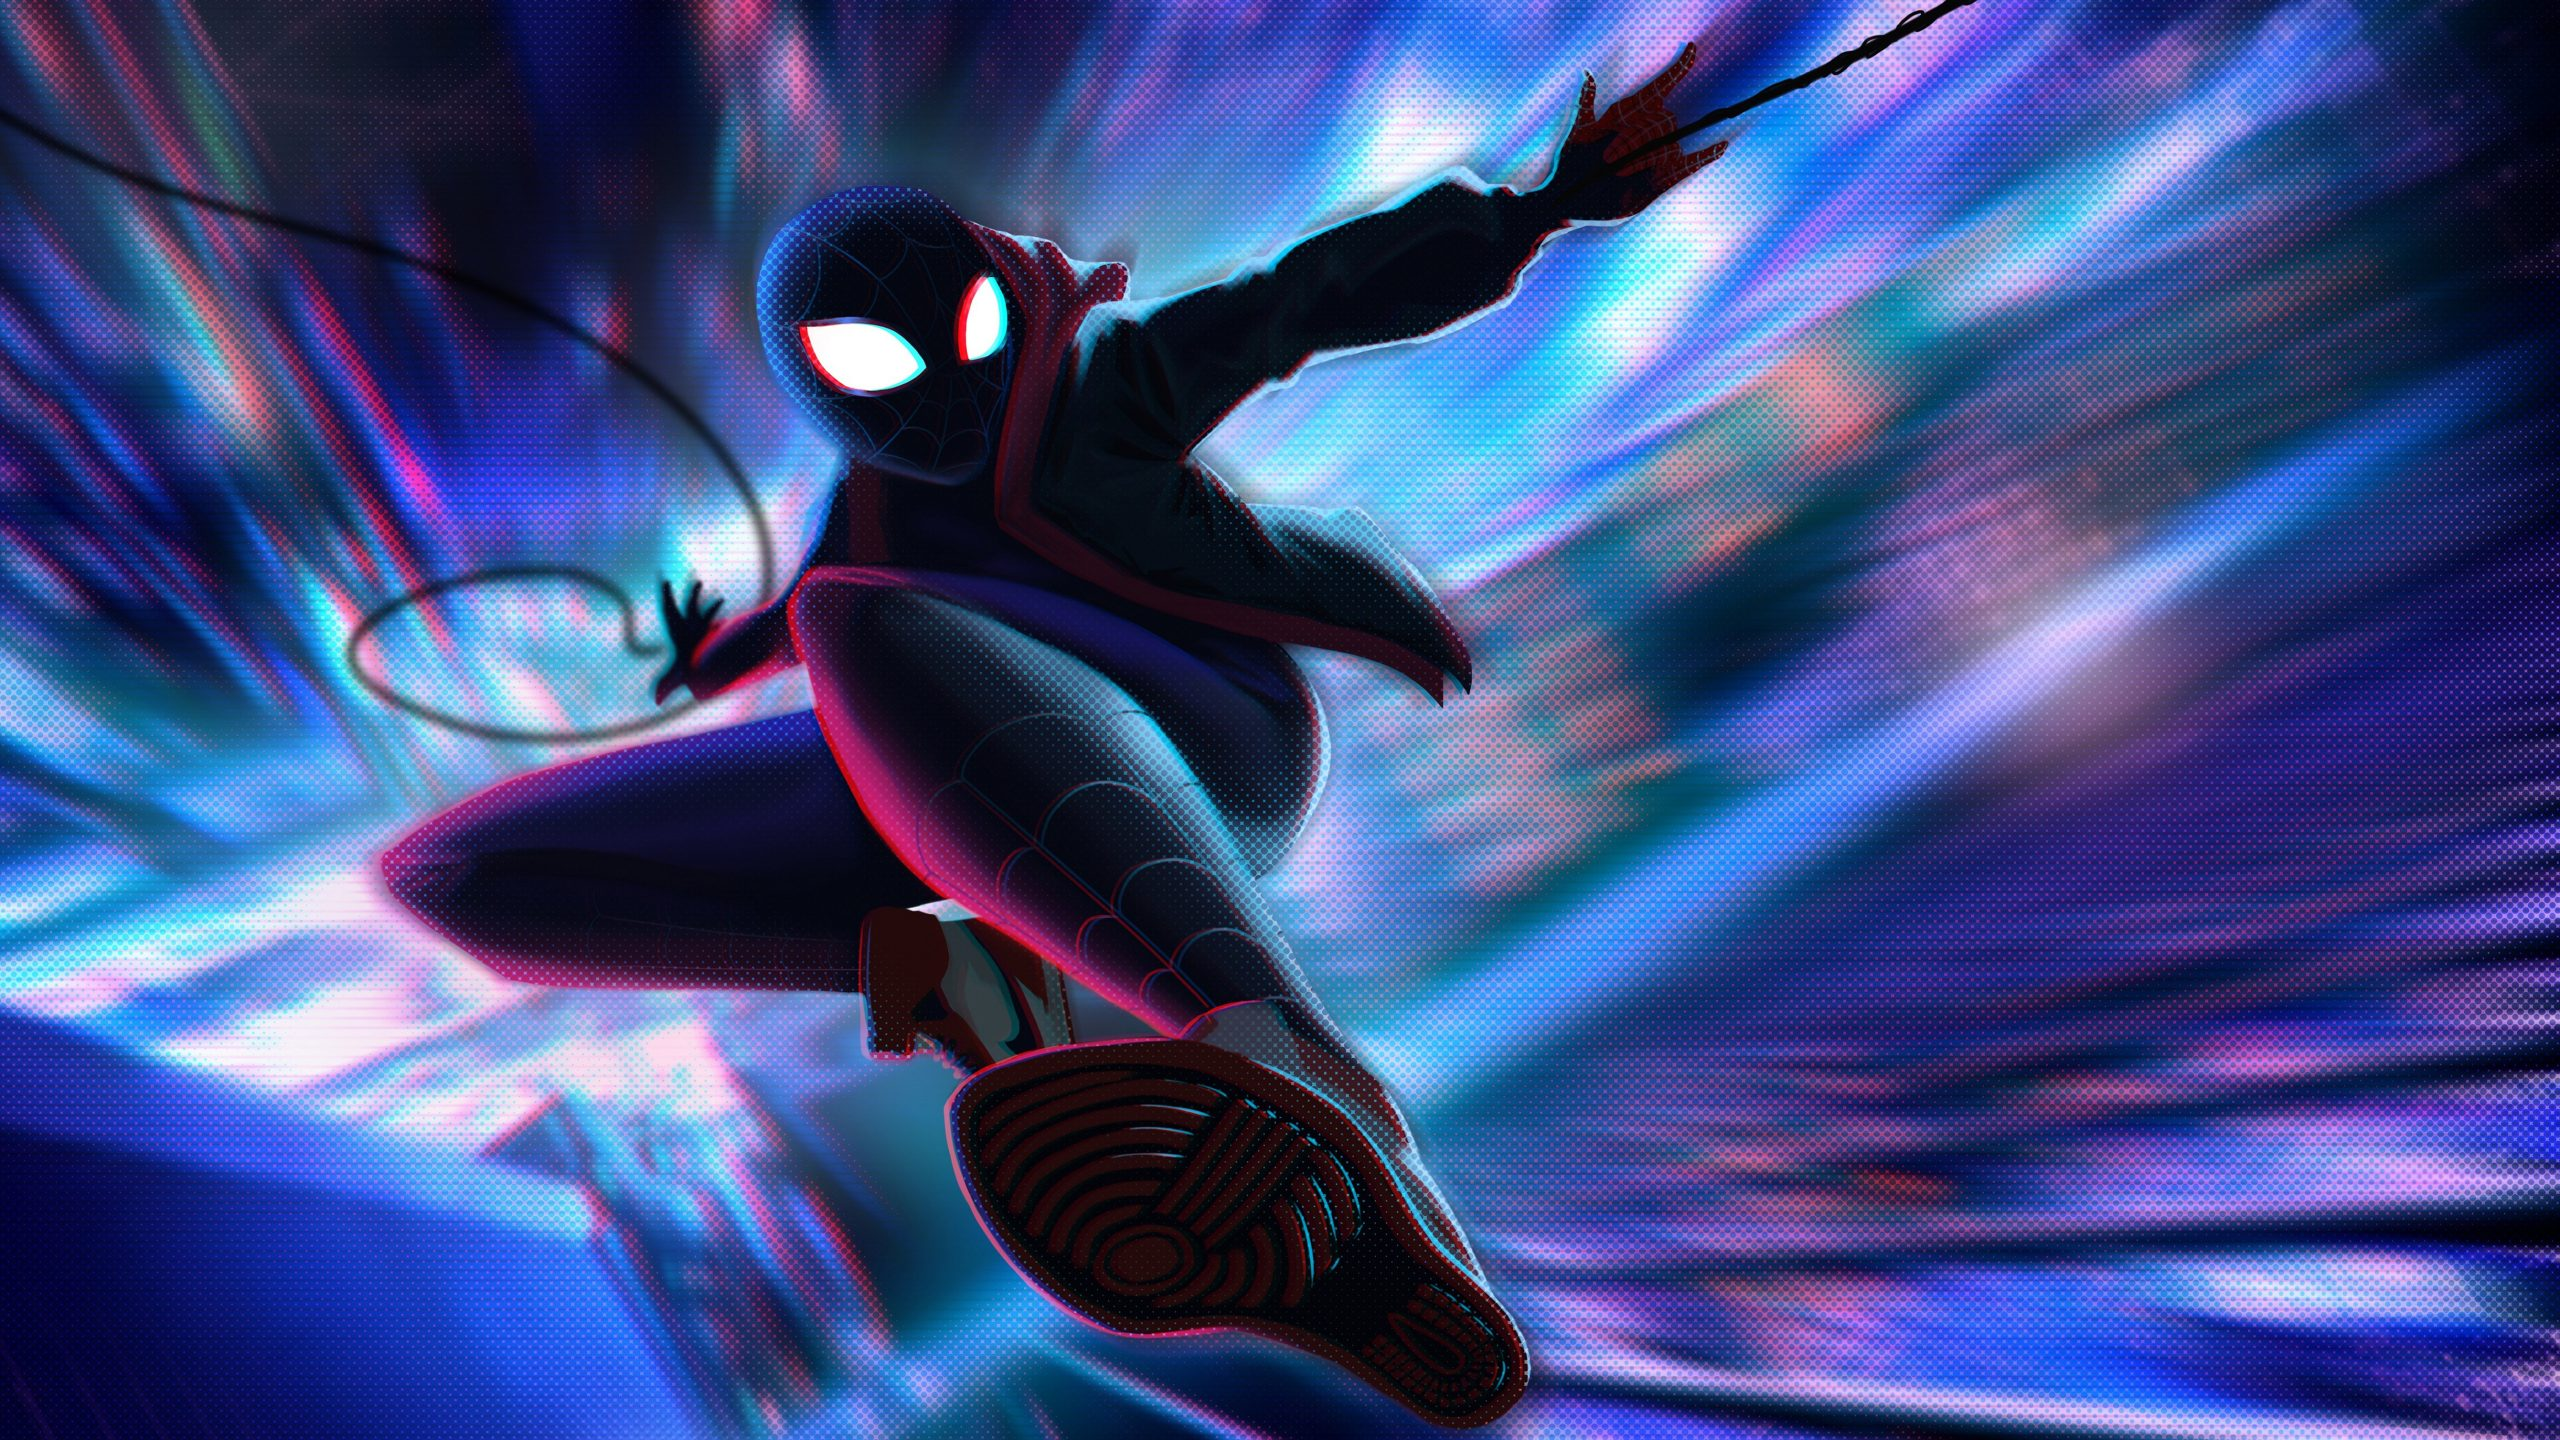 miles morales spider man into the spider verse 4k 5k best wallpapers